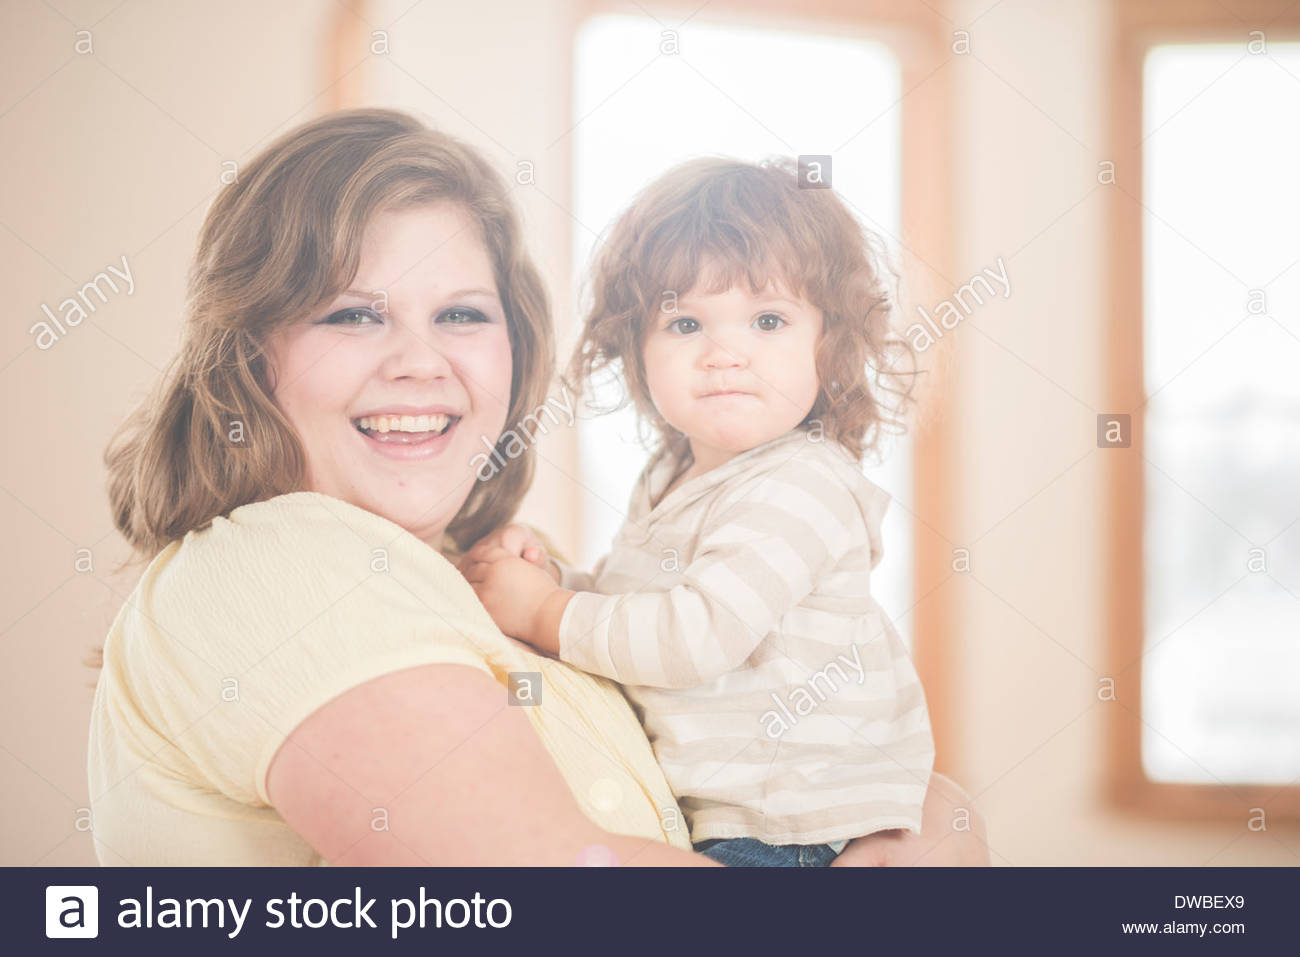 Female toddler and adoring mother - Stock Image